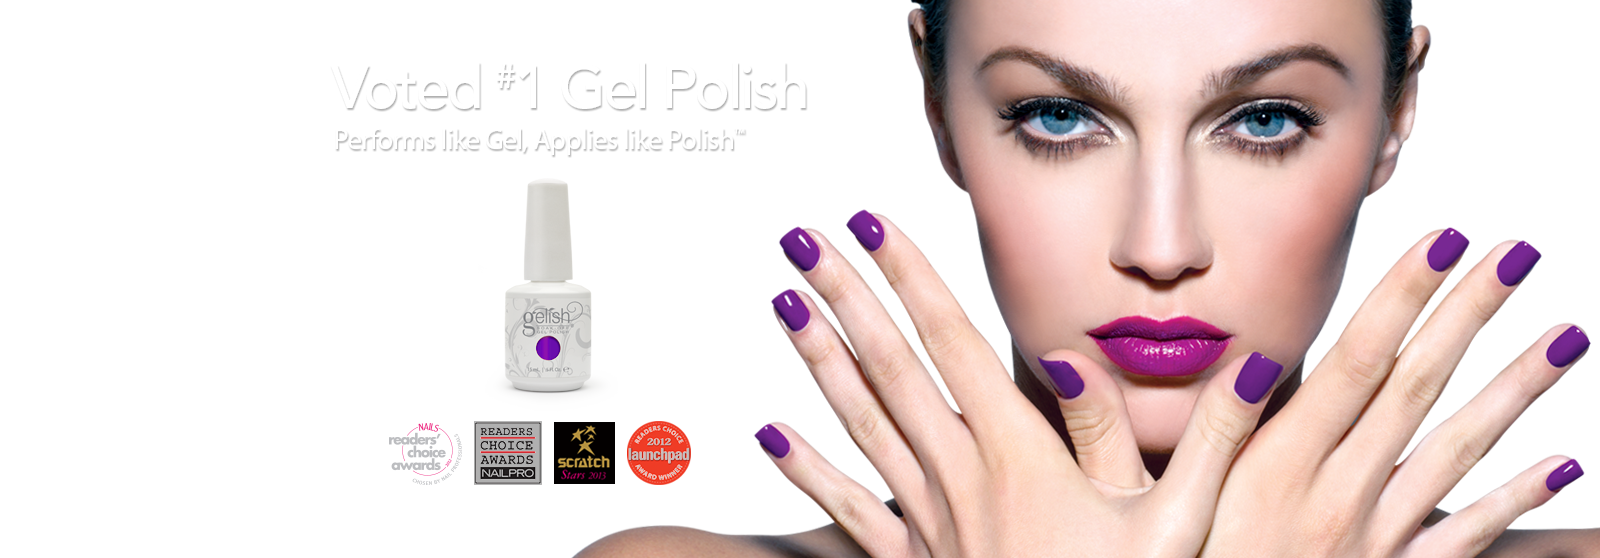 Voted #1 Gel Polish